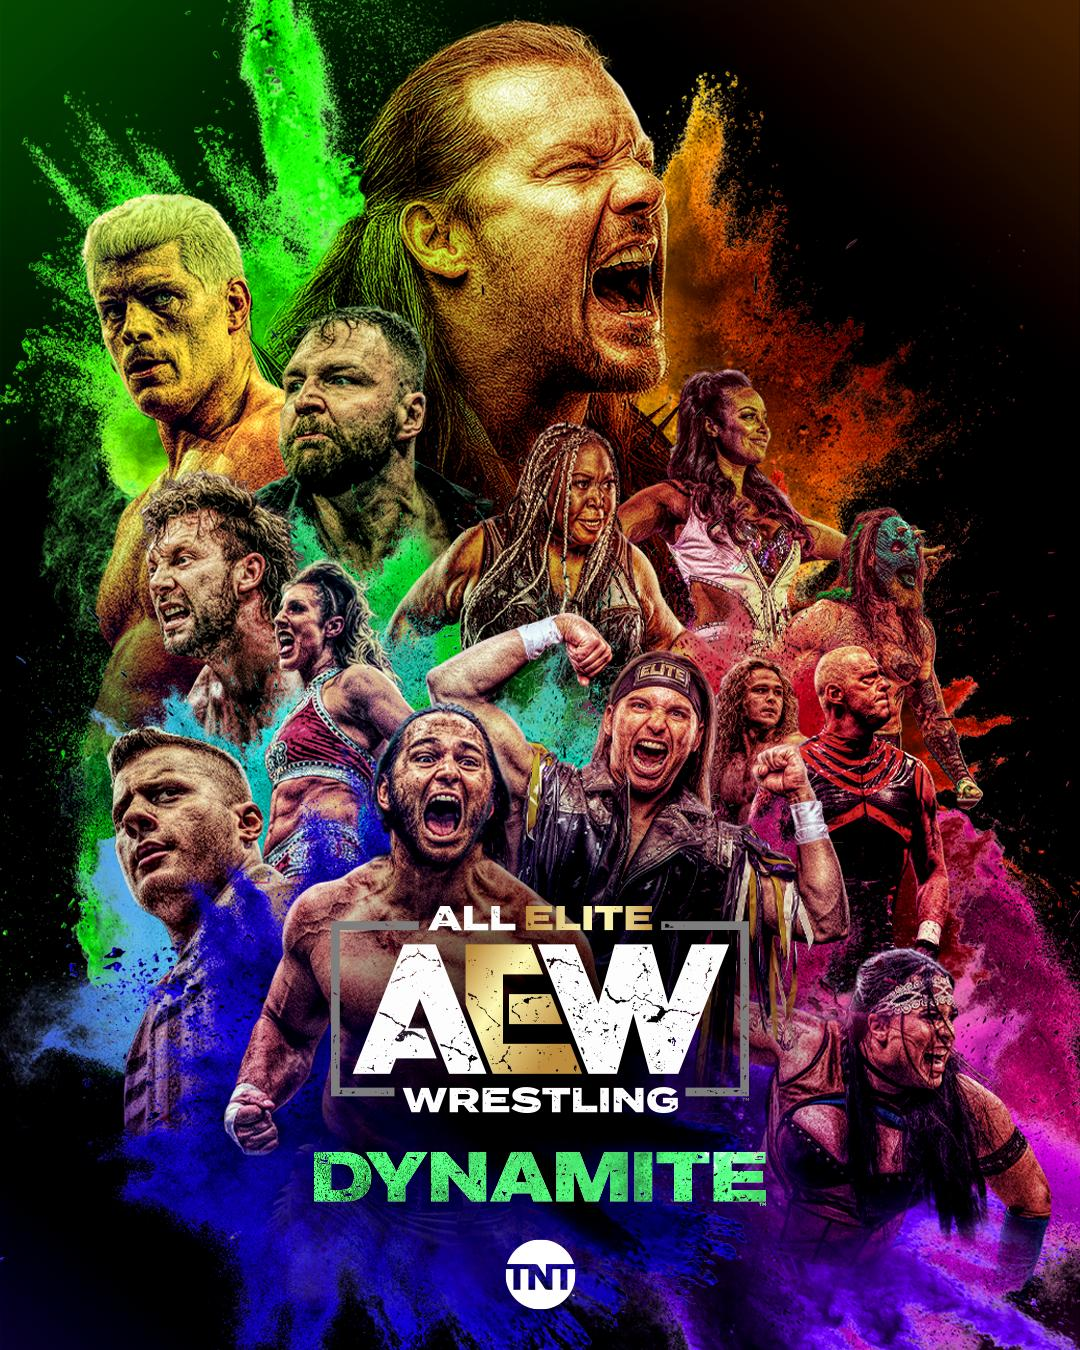 All Elite Wrestling: Dynamite Season 3 Episode 2 - AEW Dynamite 68 - New Year's Smash 2021 Night 2